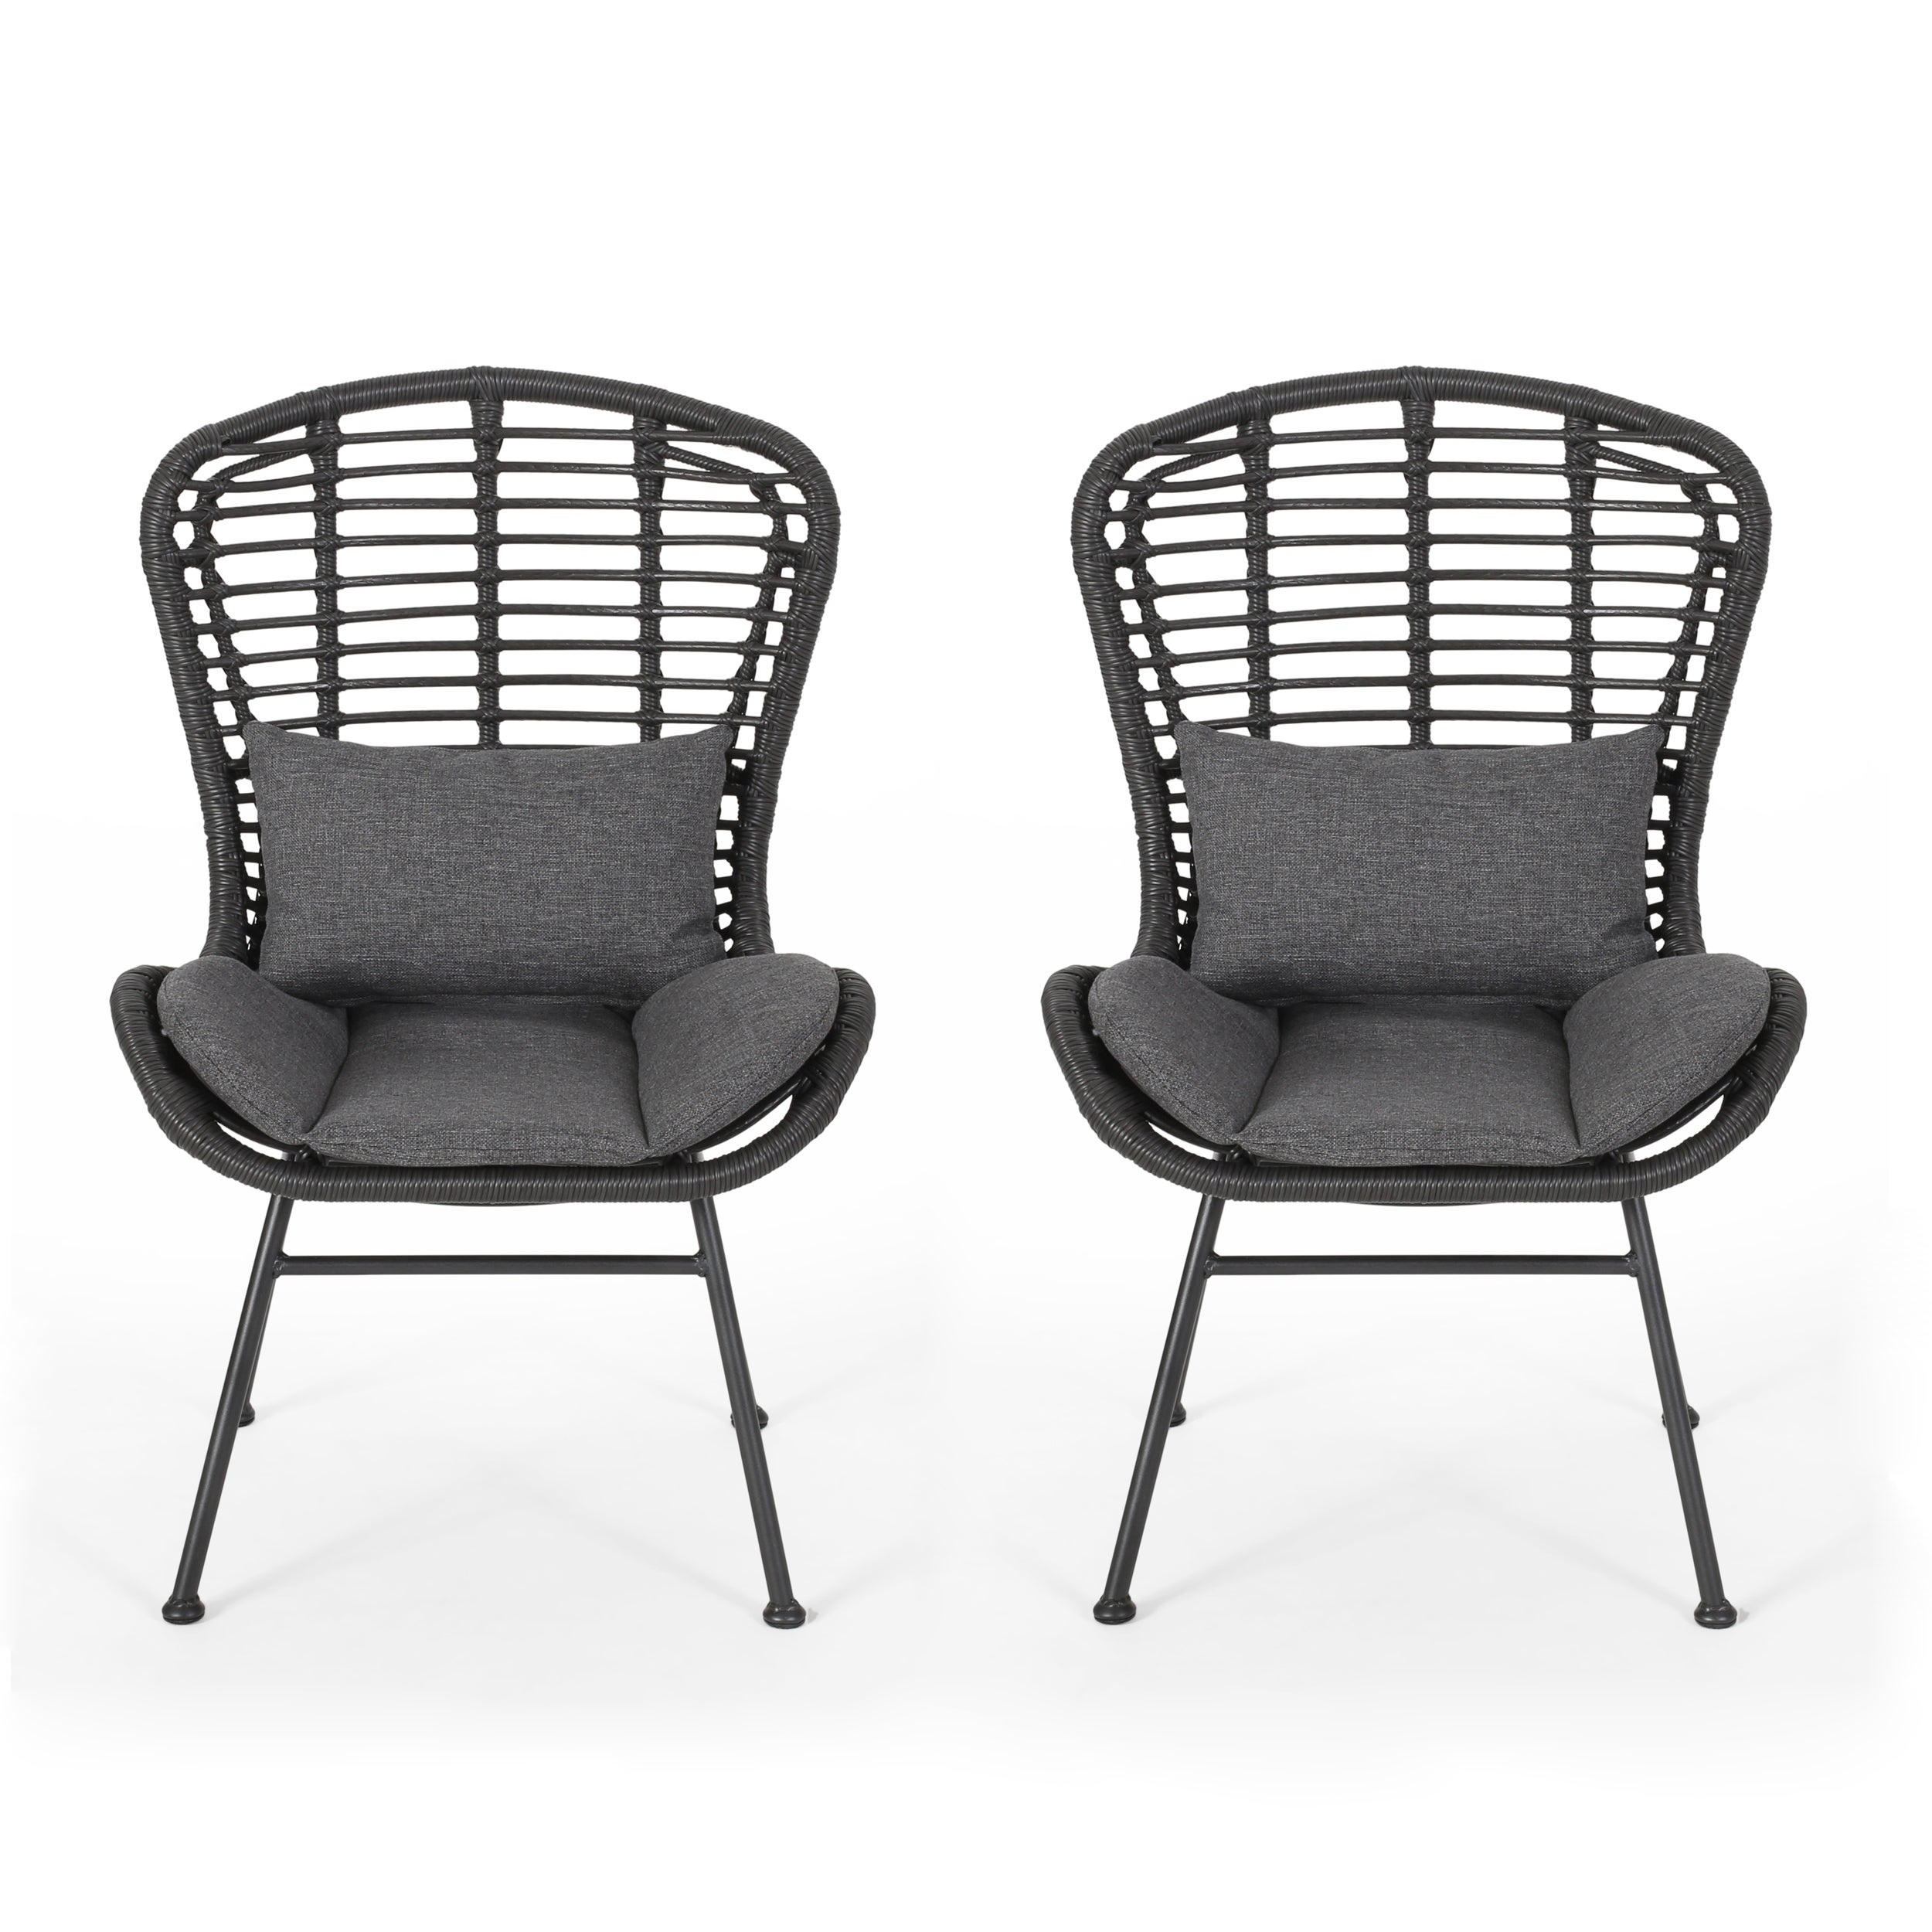 Remarkable La Habra Outdoor Wicker Club Chairs Set Of 2 By Christopher Knight Home Theyellowbook Wood Chair Design Ideas Theyellowbookinfo